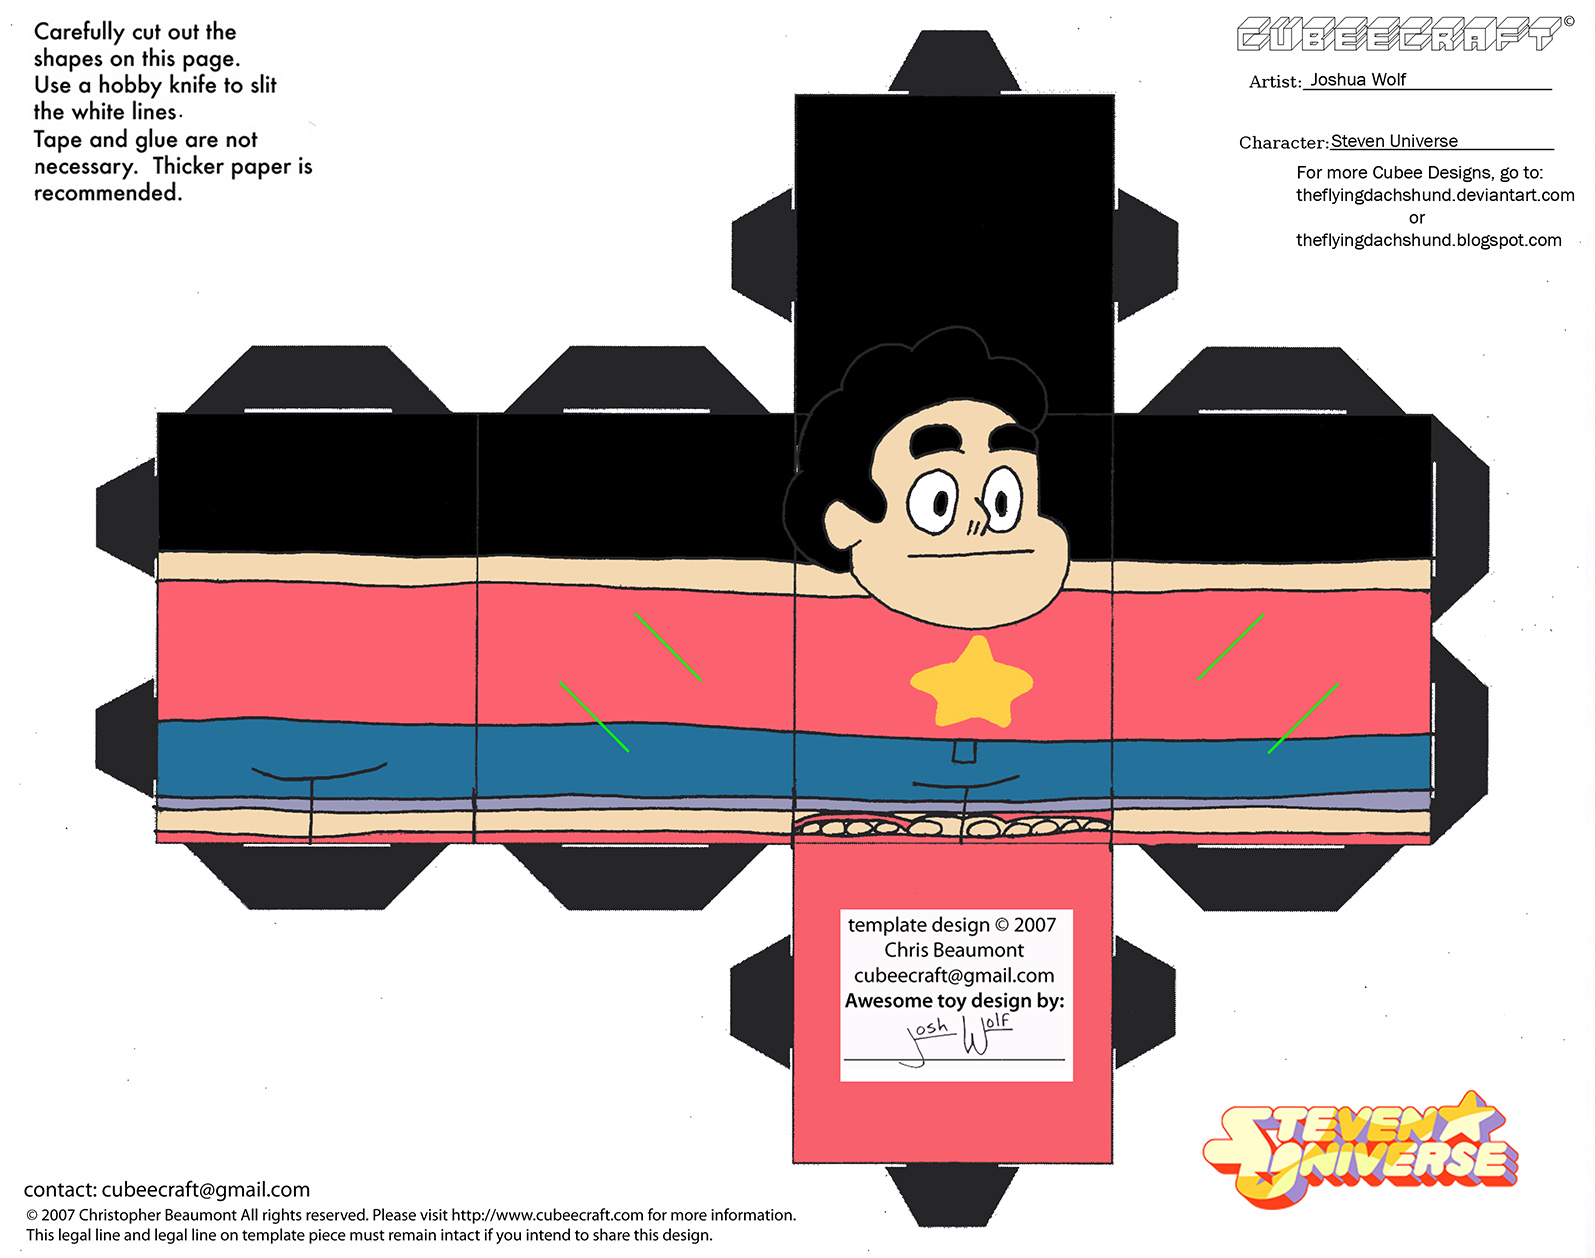 CE7: Steven Universe Cubee by TheFlyingDachshund on DeviantArt